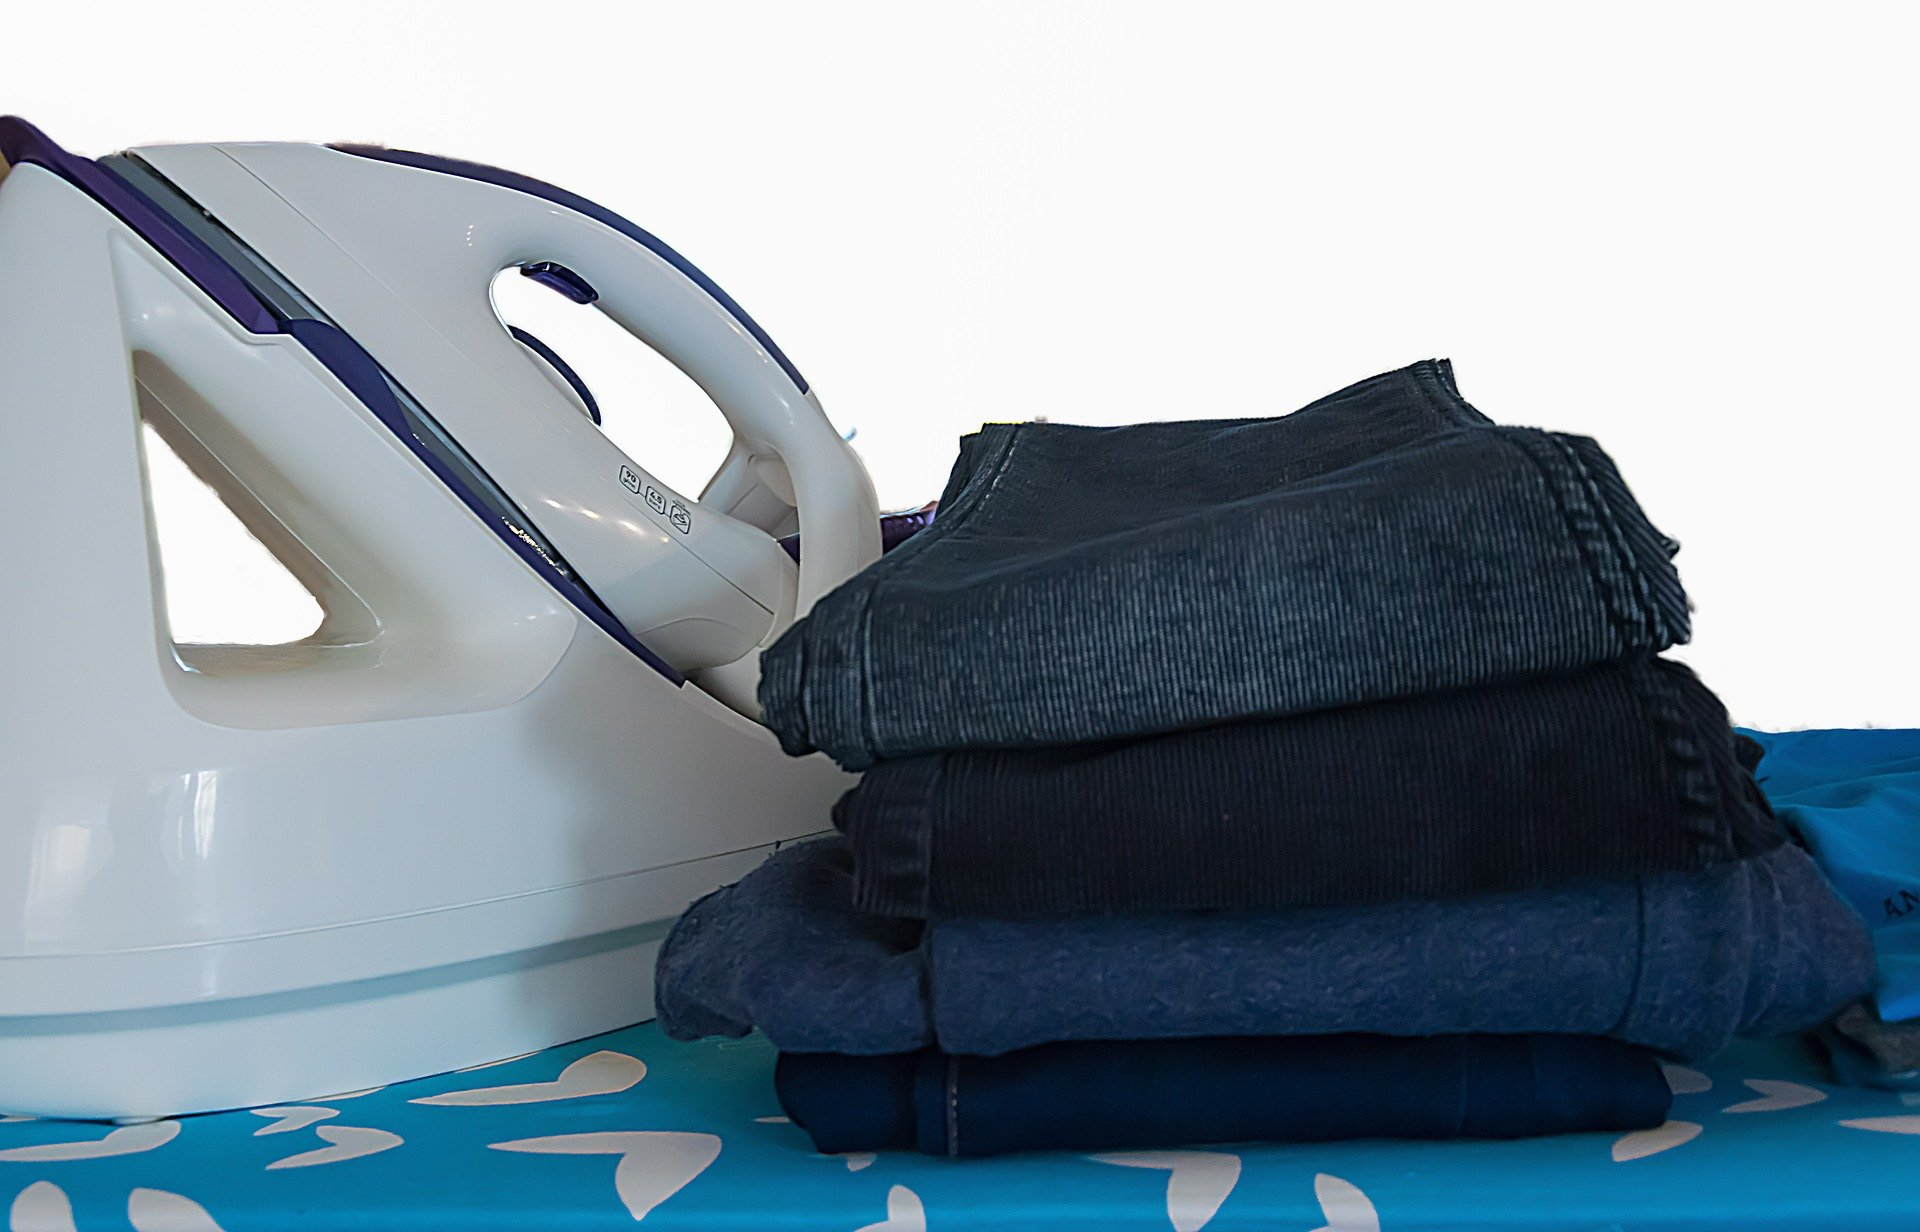 A pile of ironed clothes next to an iron. | Source: Michal_o79/Pixabay